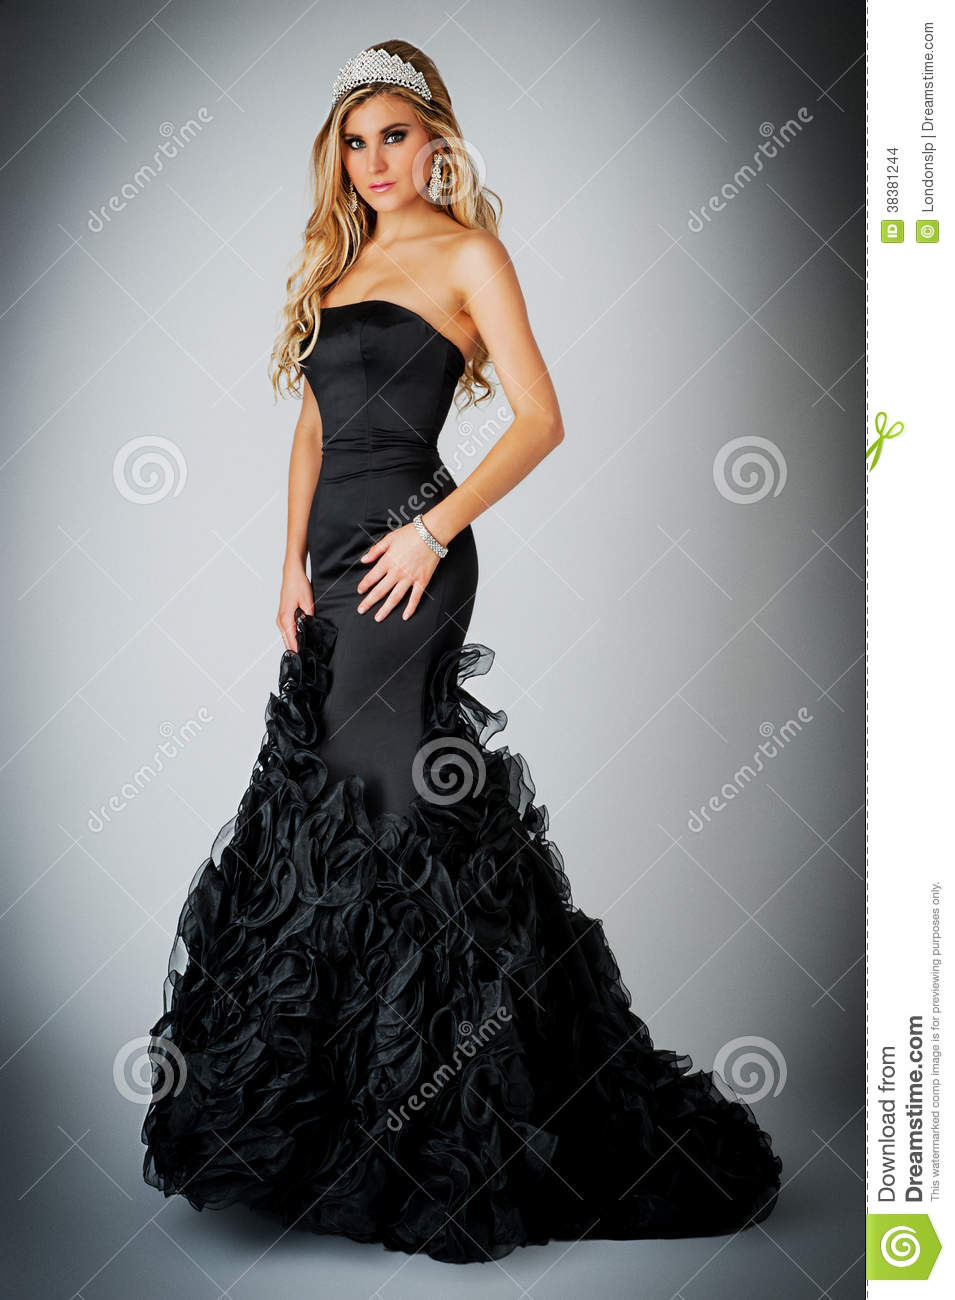 Woman In Black Ball Gown Dress. Stock Photo - Image 38381244